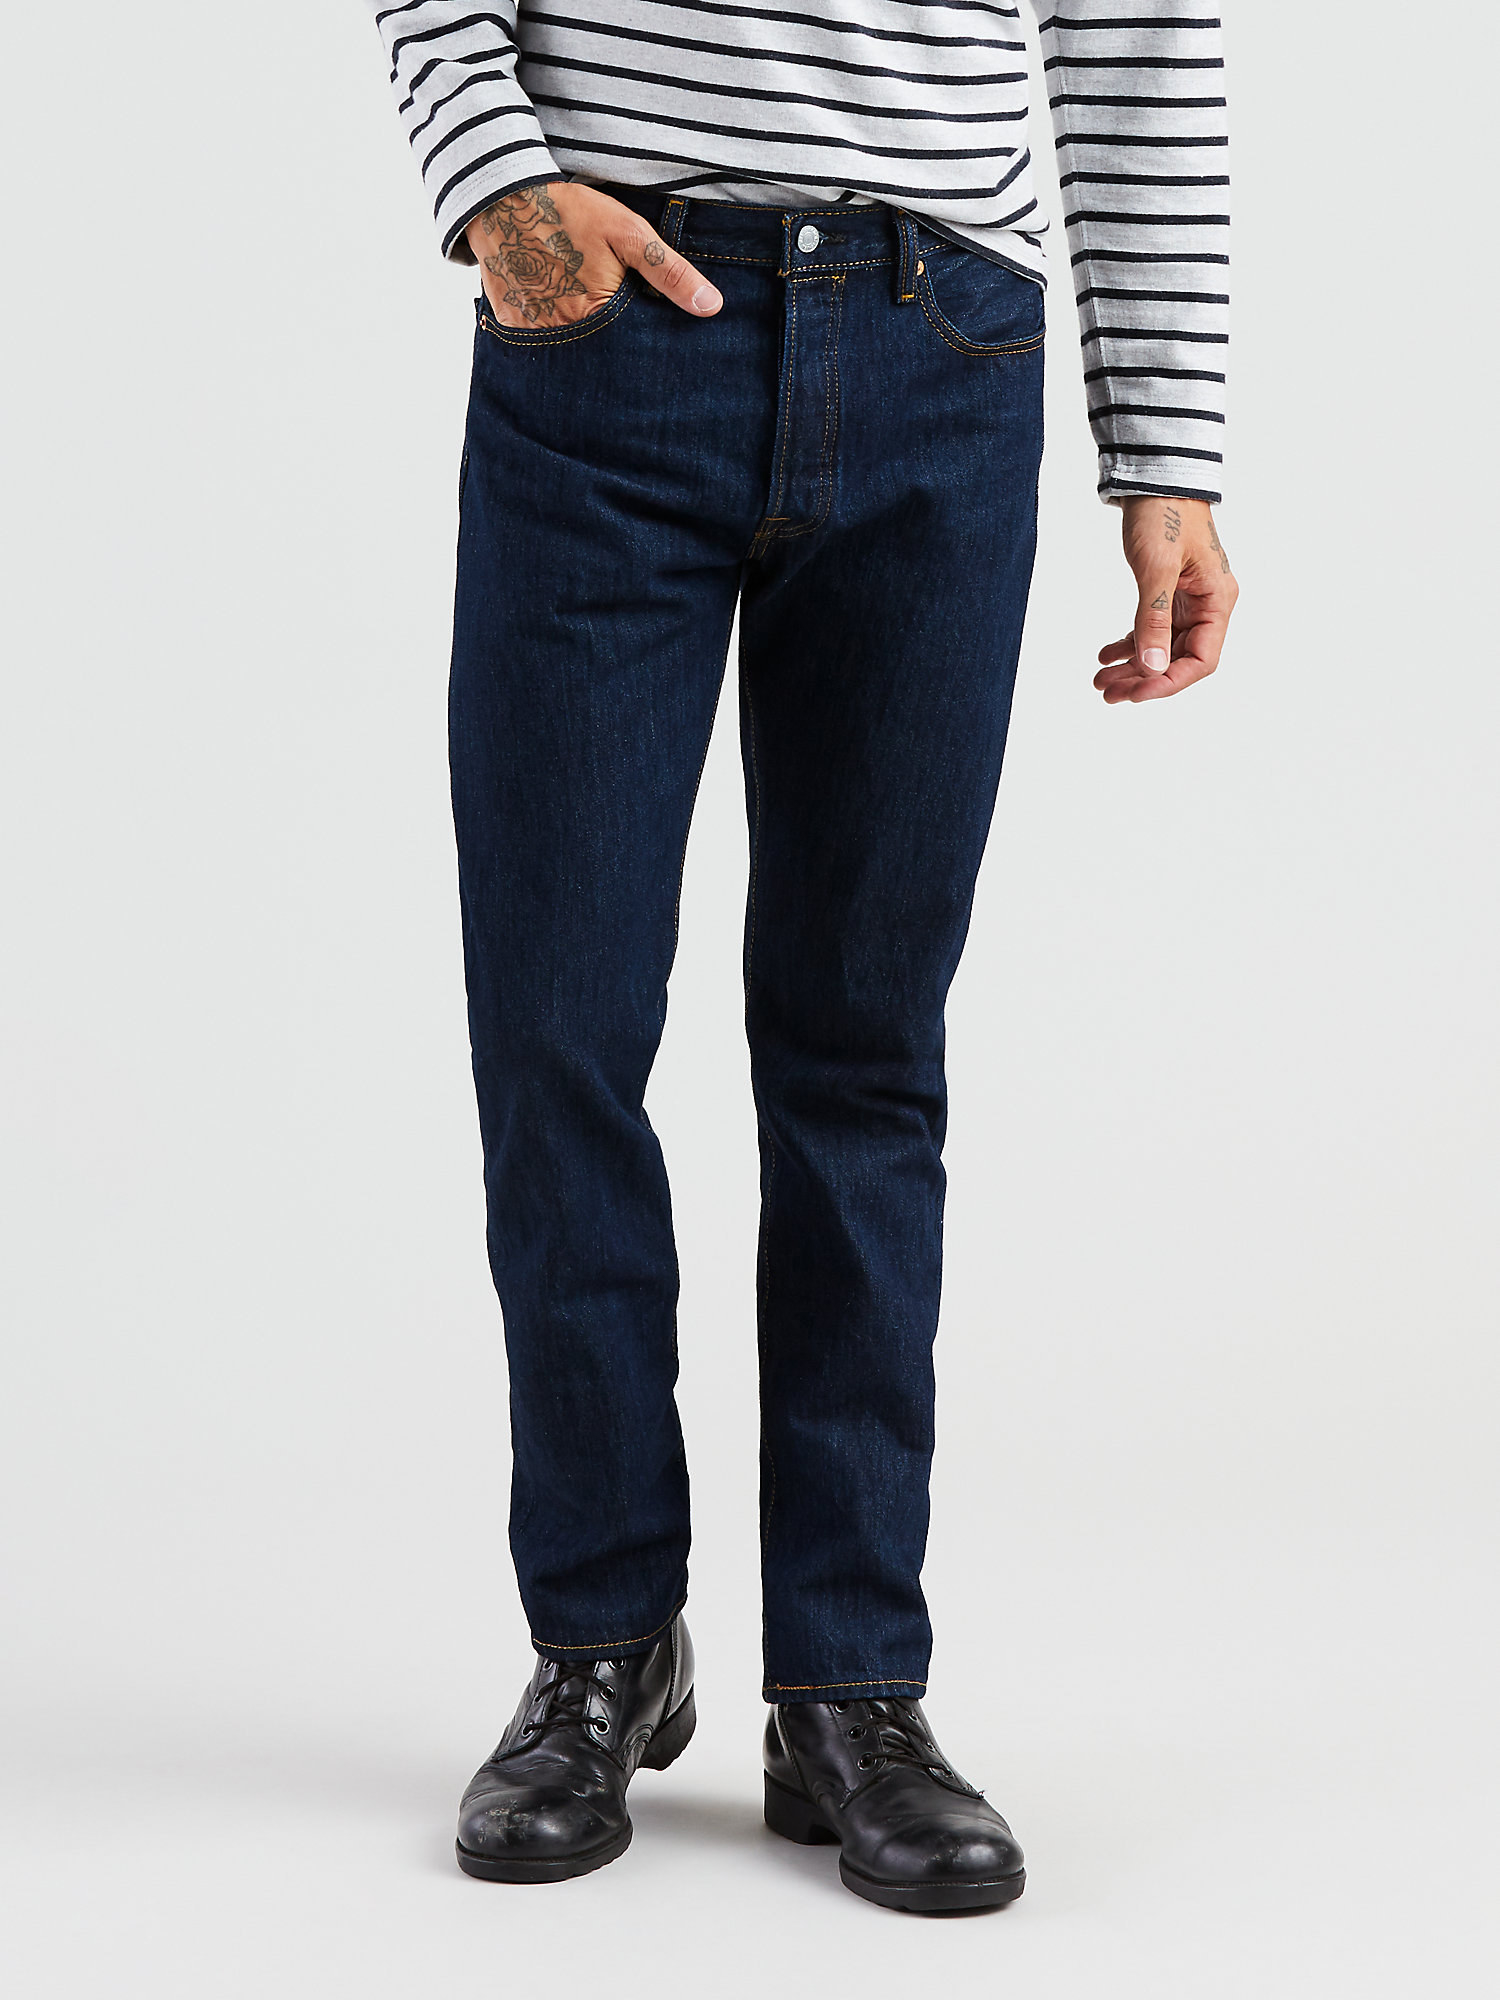 The jeans in dark blue rinse